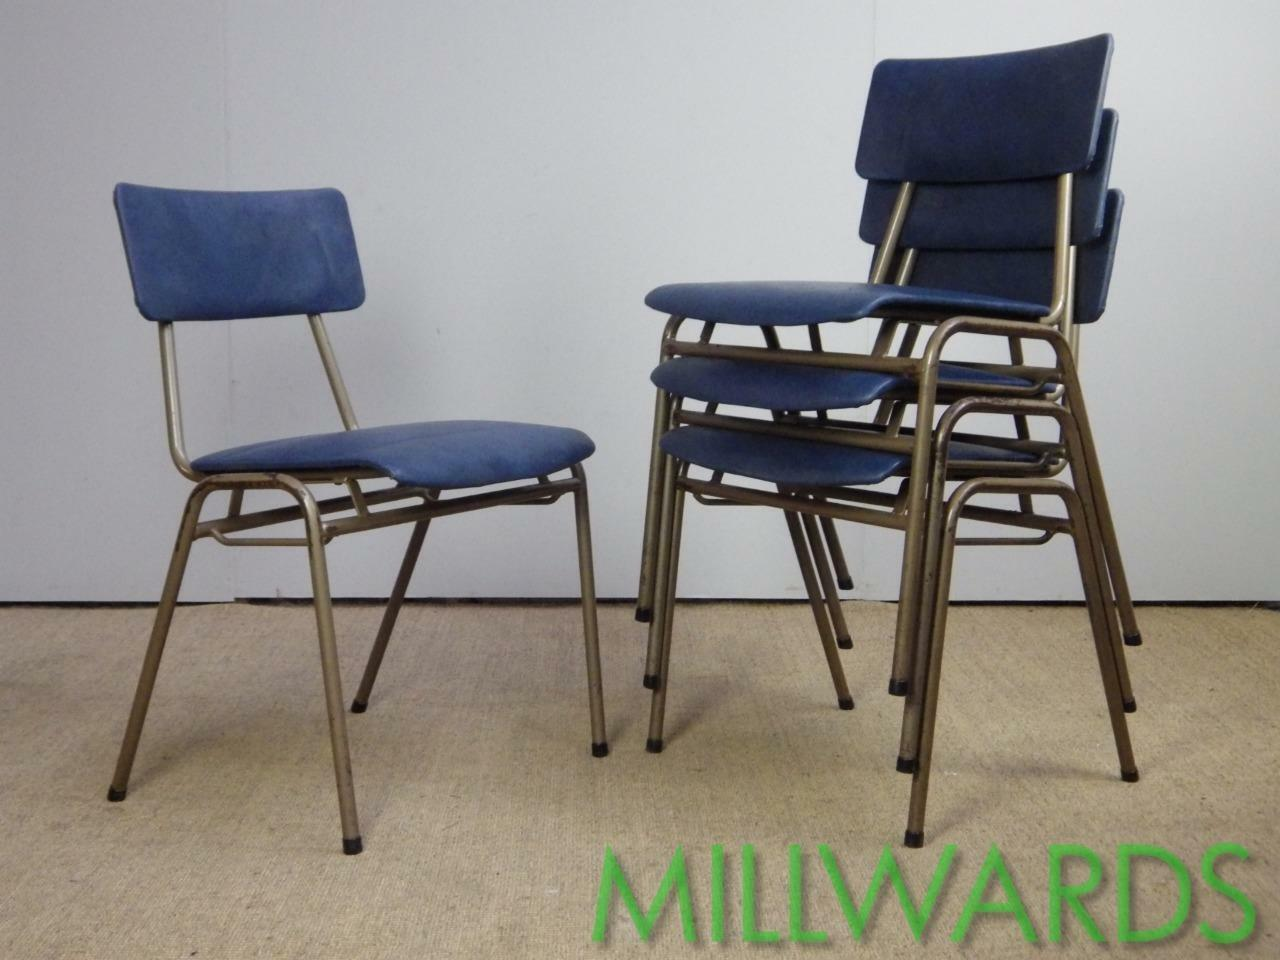 100+ AVAILABLE Vintage Stacking Industrial Remploy School Cafe Bar Chairs incVAT